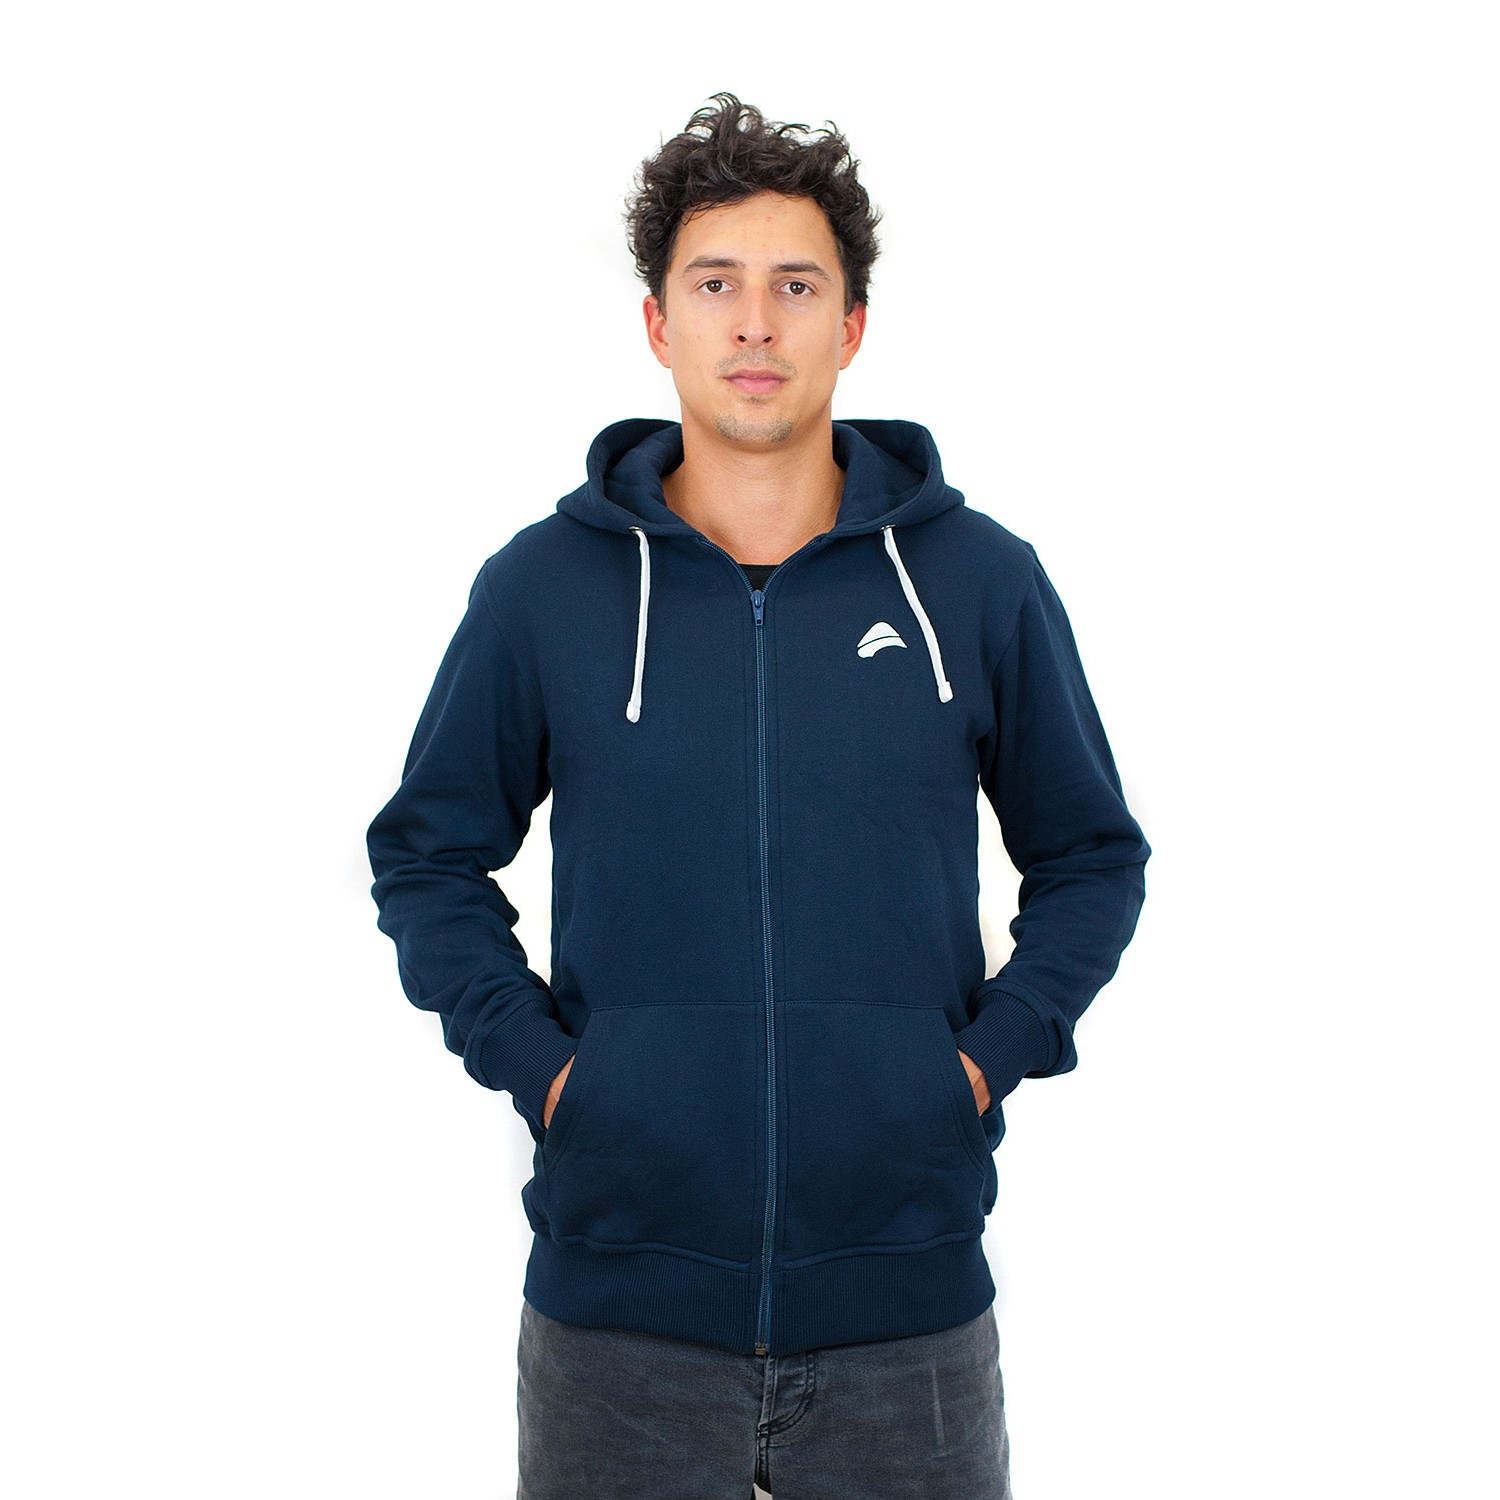 SIGNATURE NAVY Zipper